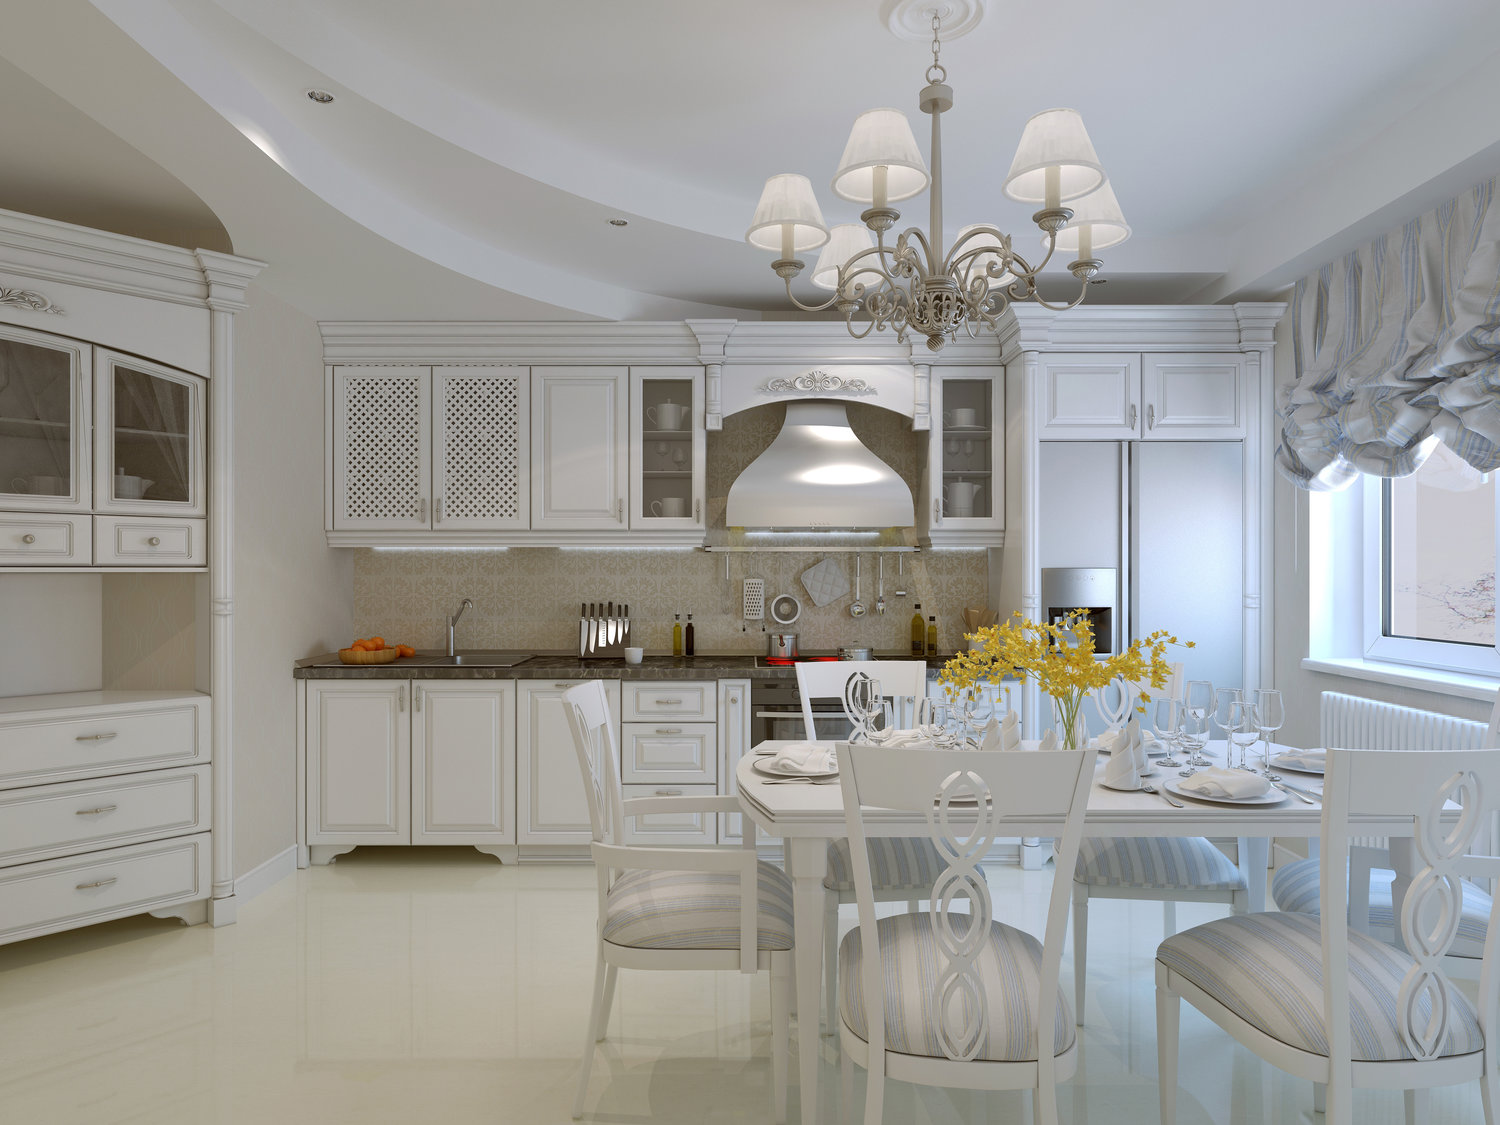 Kitchens Interiors Kitchen Renovations Or Remodeling By Khb Interiors In New Orleans